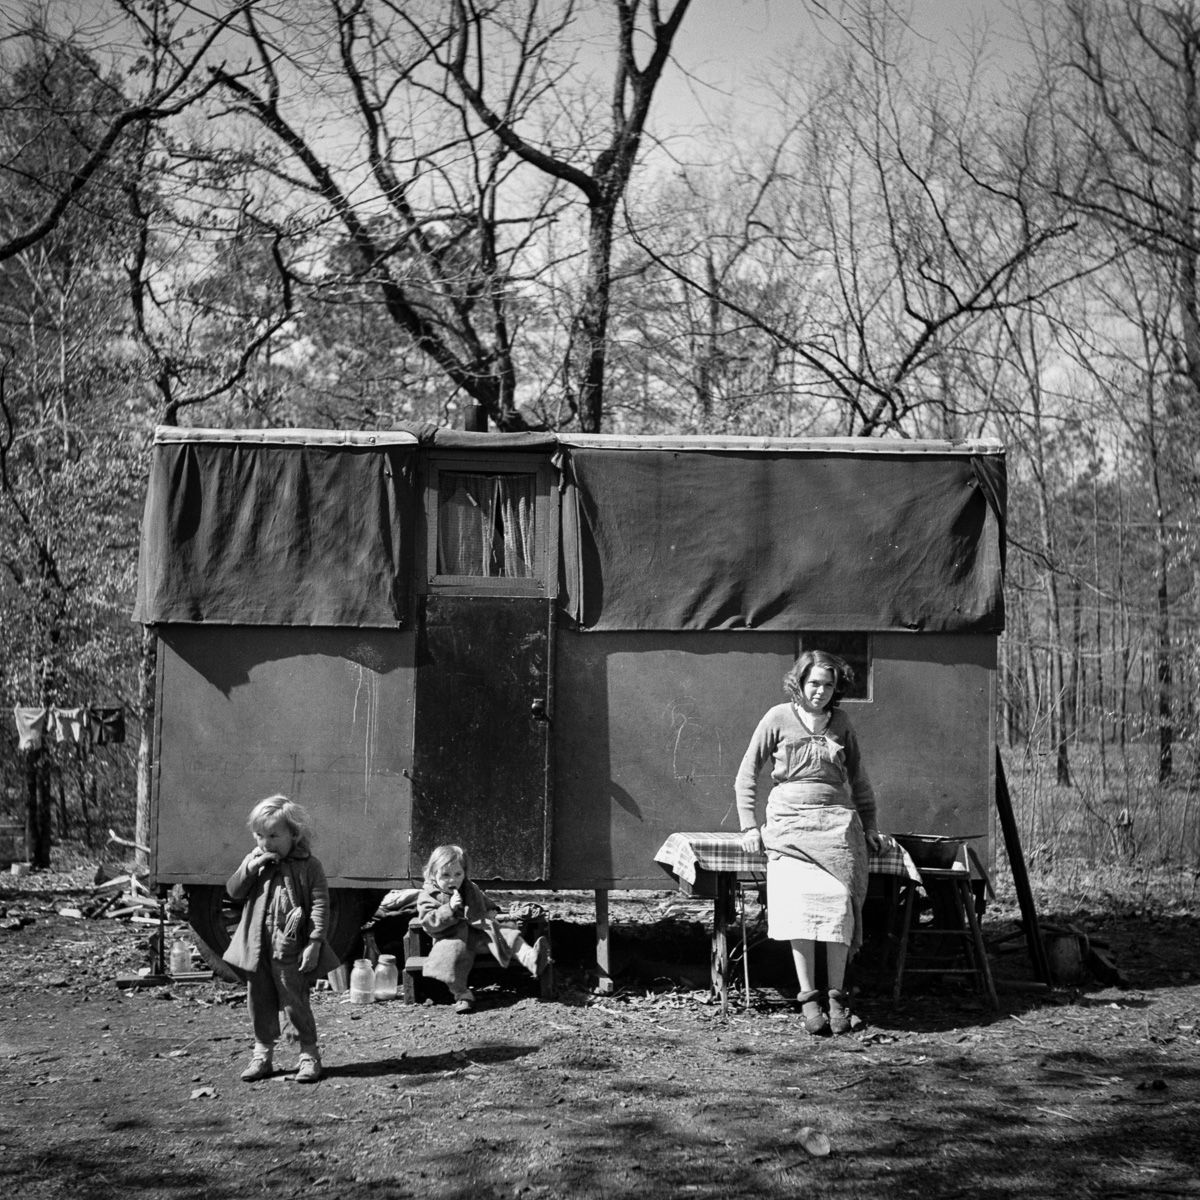 February 1937 A migrant encampment in Birmingham, Alabama.